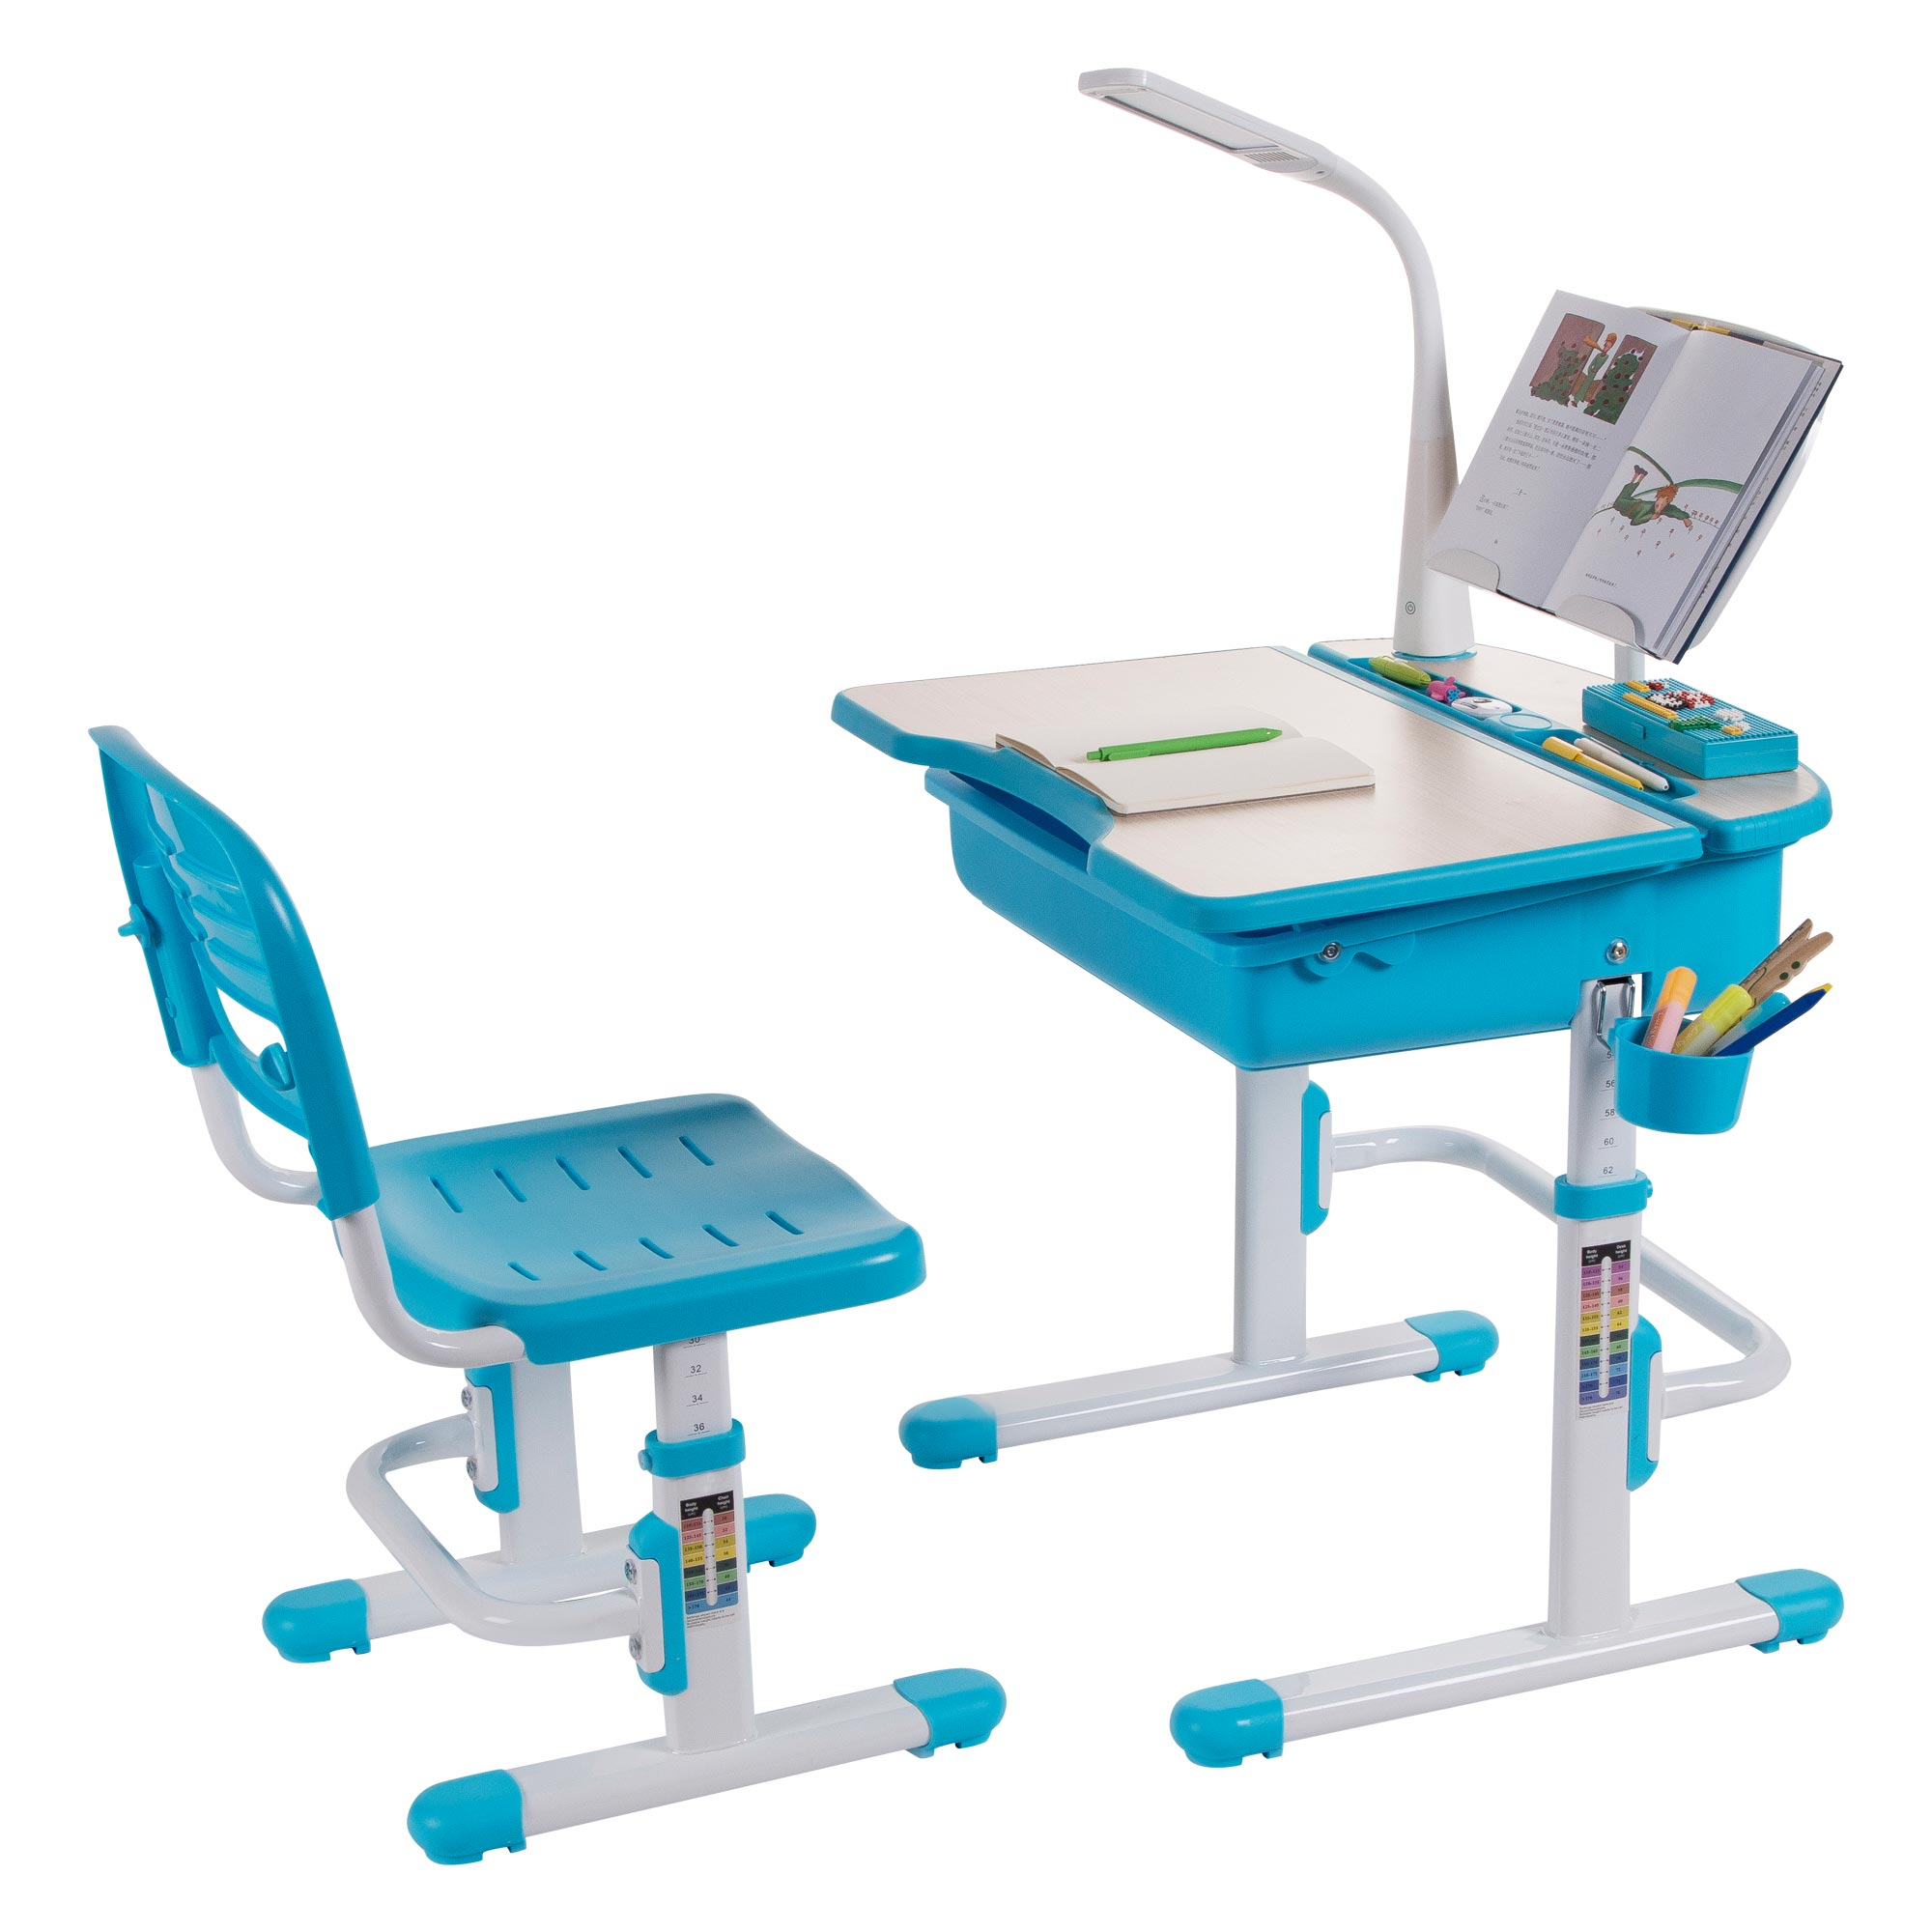 adjustable desks you chairs en green since sit desk vissle in products gb comfortably childrens art white is the s teal children rfj chair height ll bright ikea